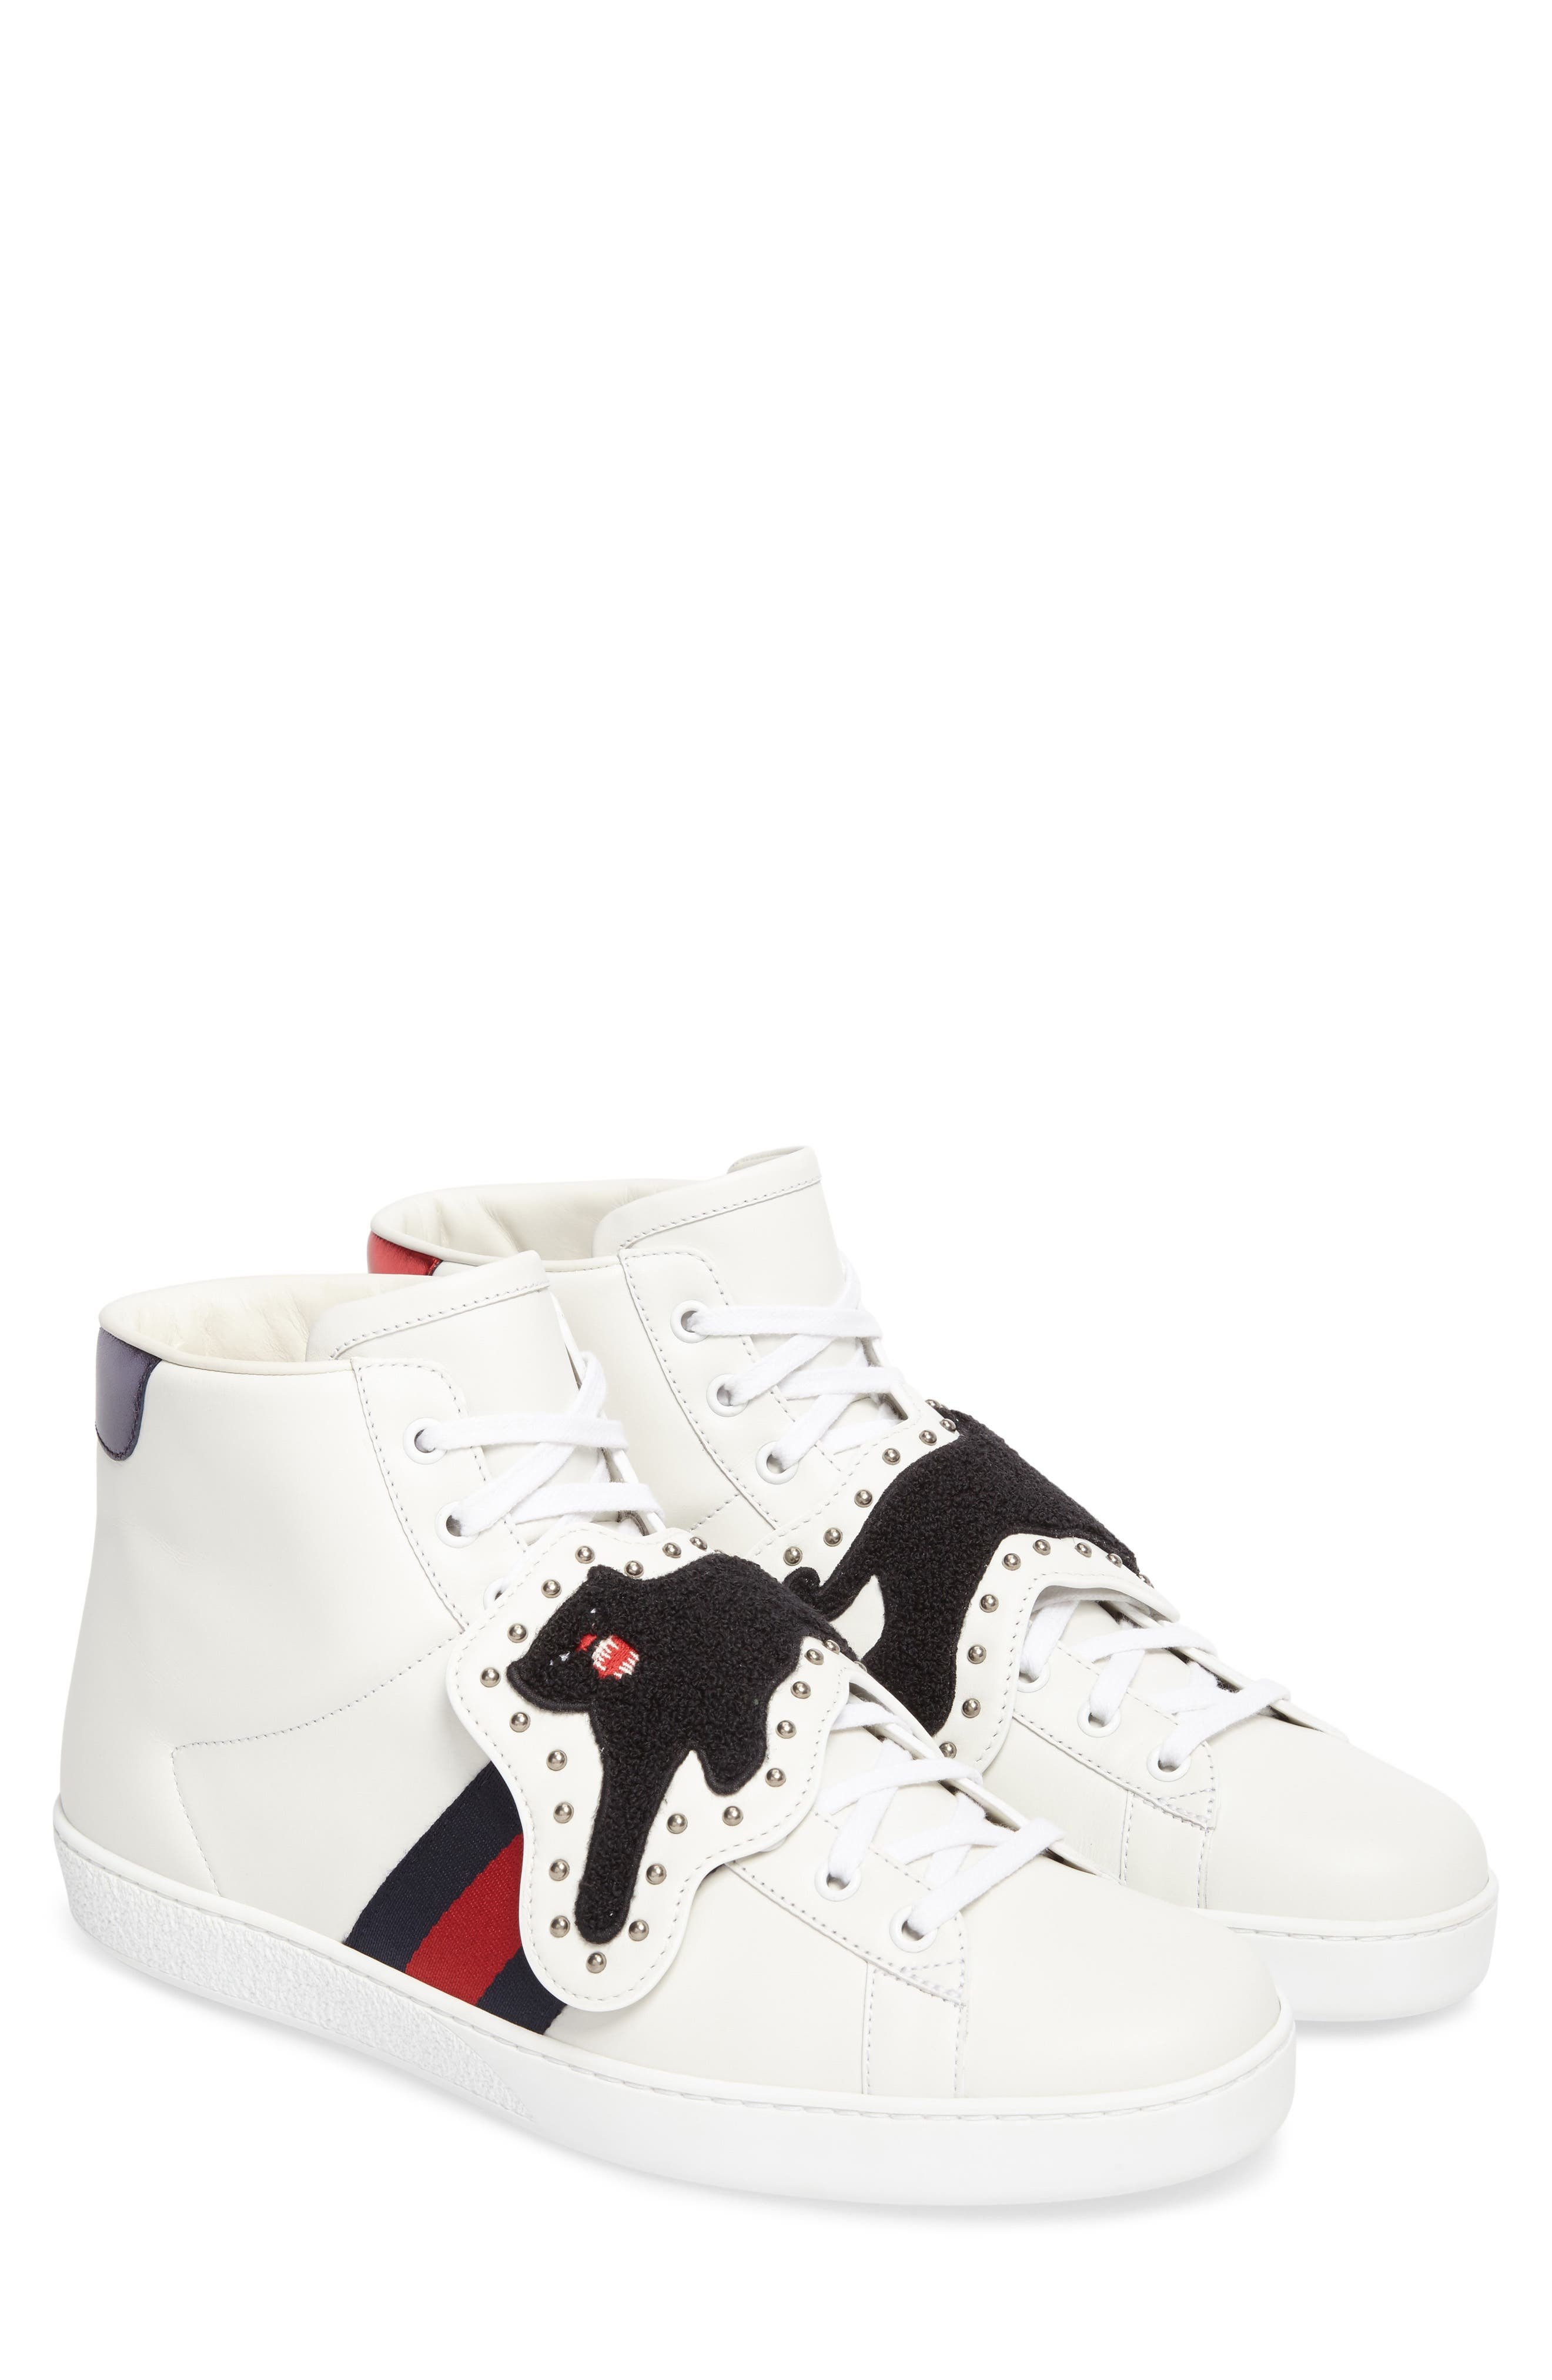 GUCCI | Ace Removable Patch Sneaker